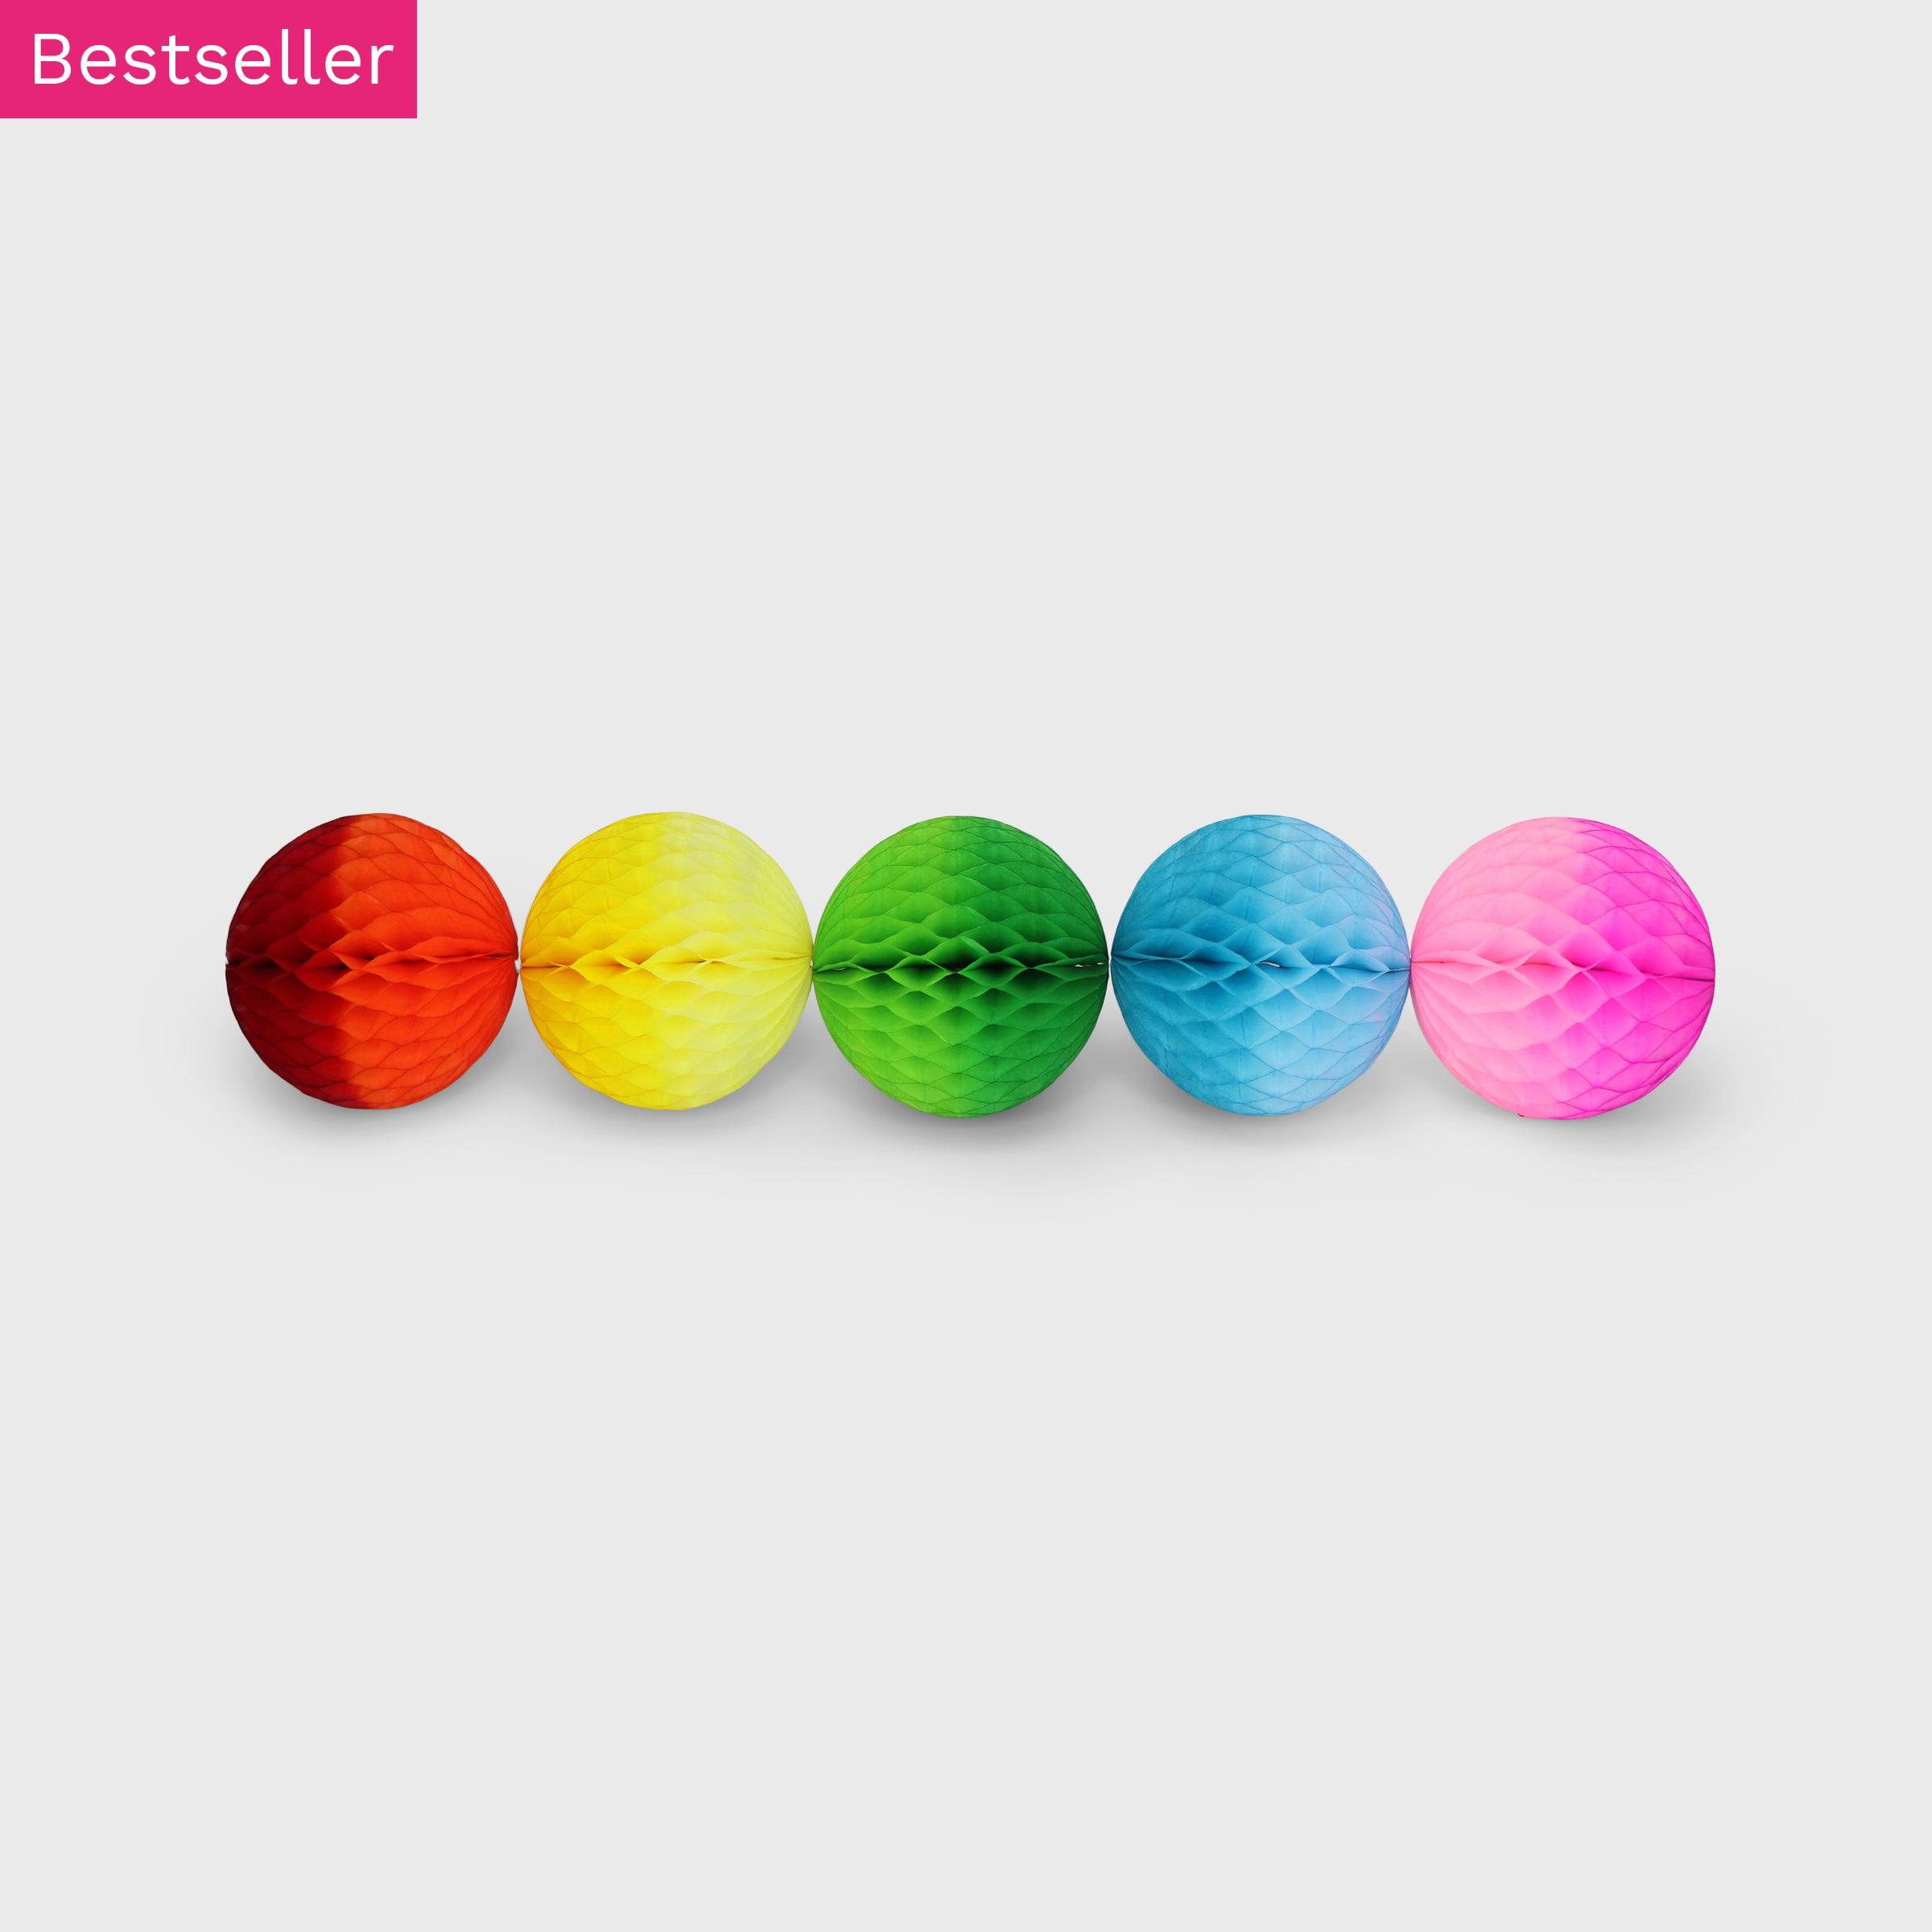 Honeycomb Ball 10cm Pack of 5, Rainbow Ombre